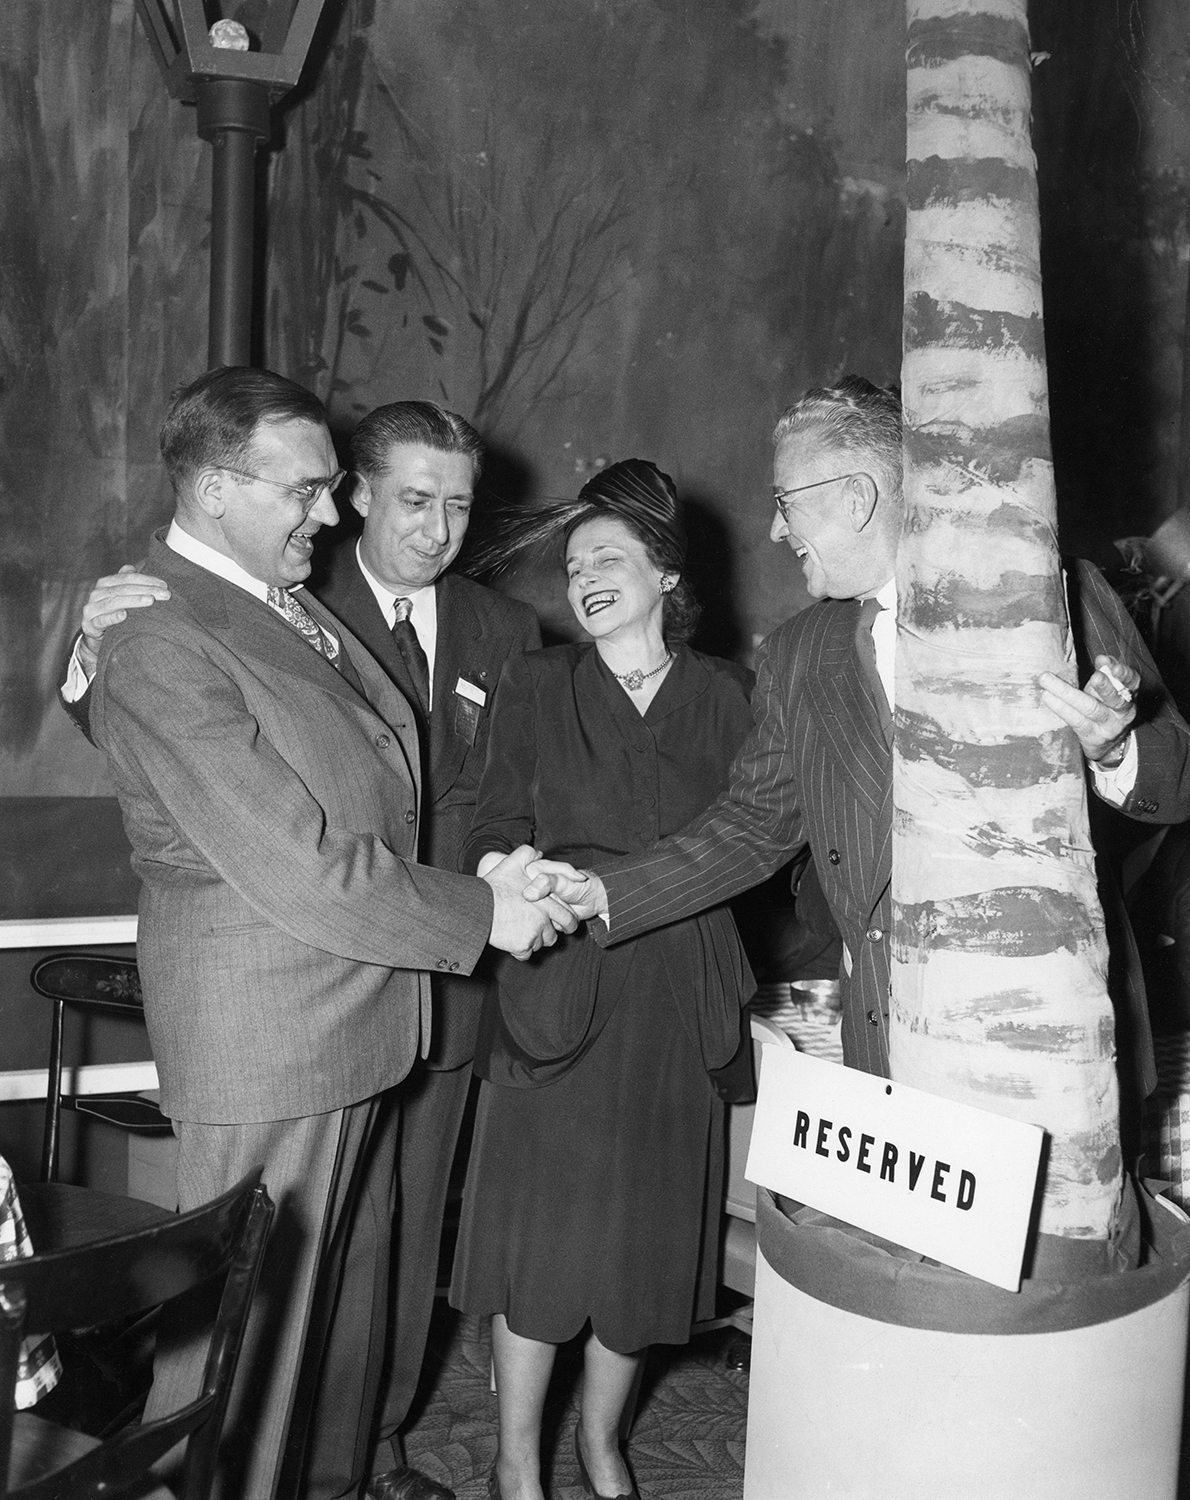 Sylvia at the 1947 Beer Distributor's convention